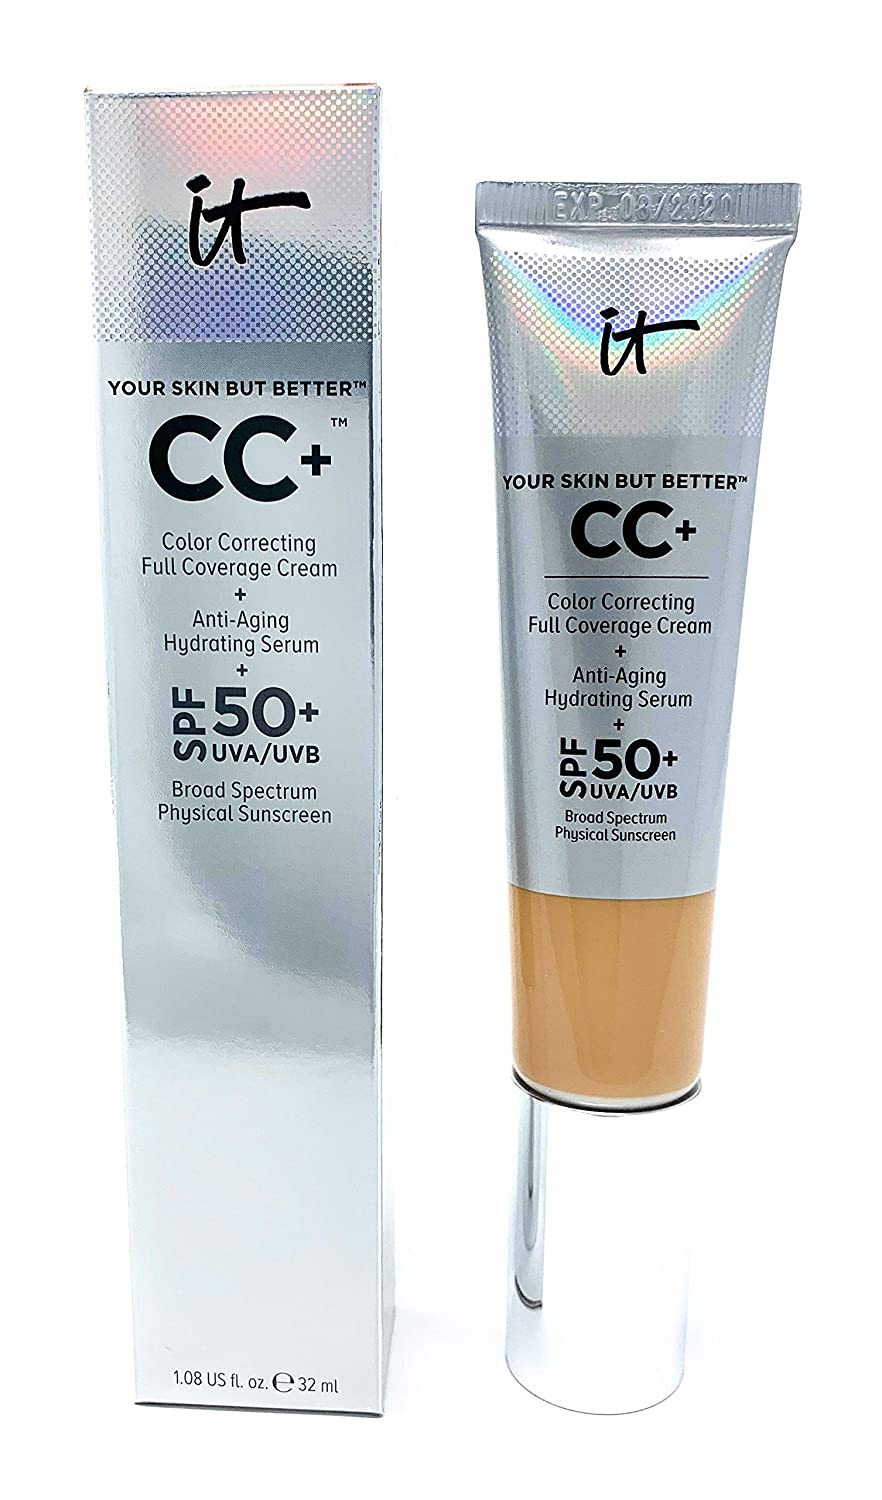 It Cosmetics CC+ Cream SPF 50 (Light Medium) Full Coverage, 1.08 Ounces